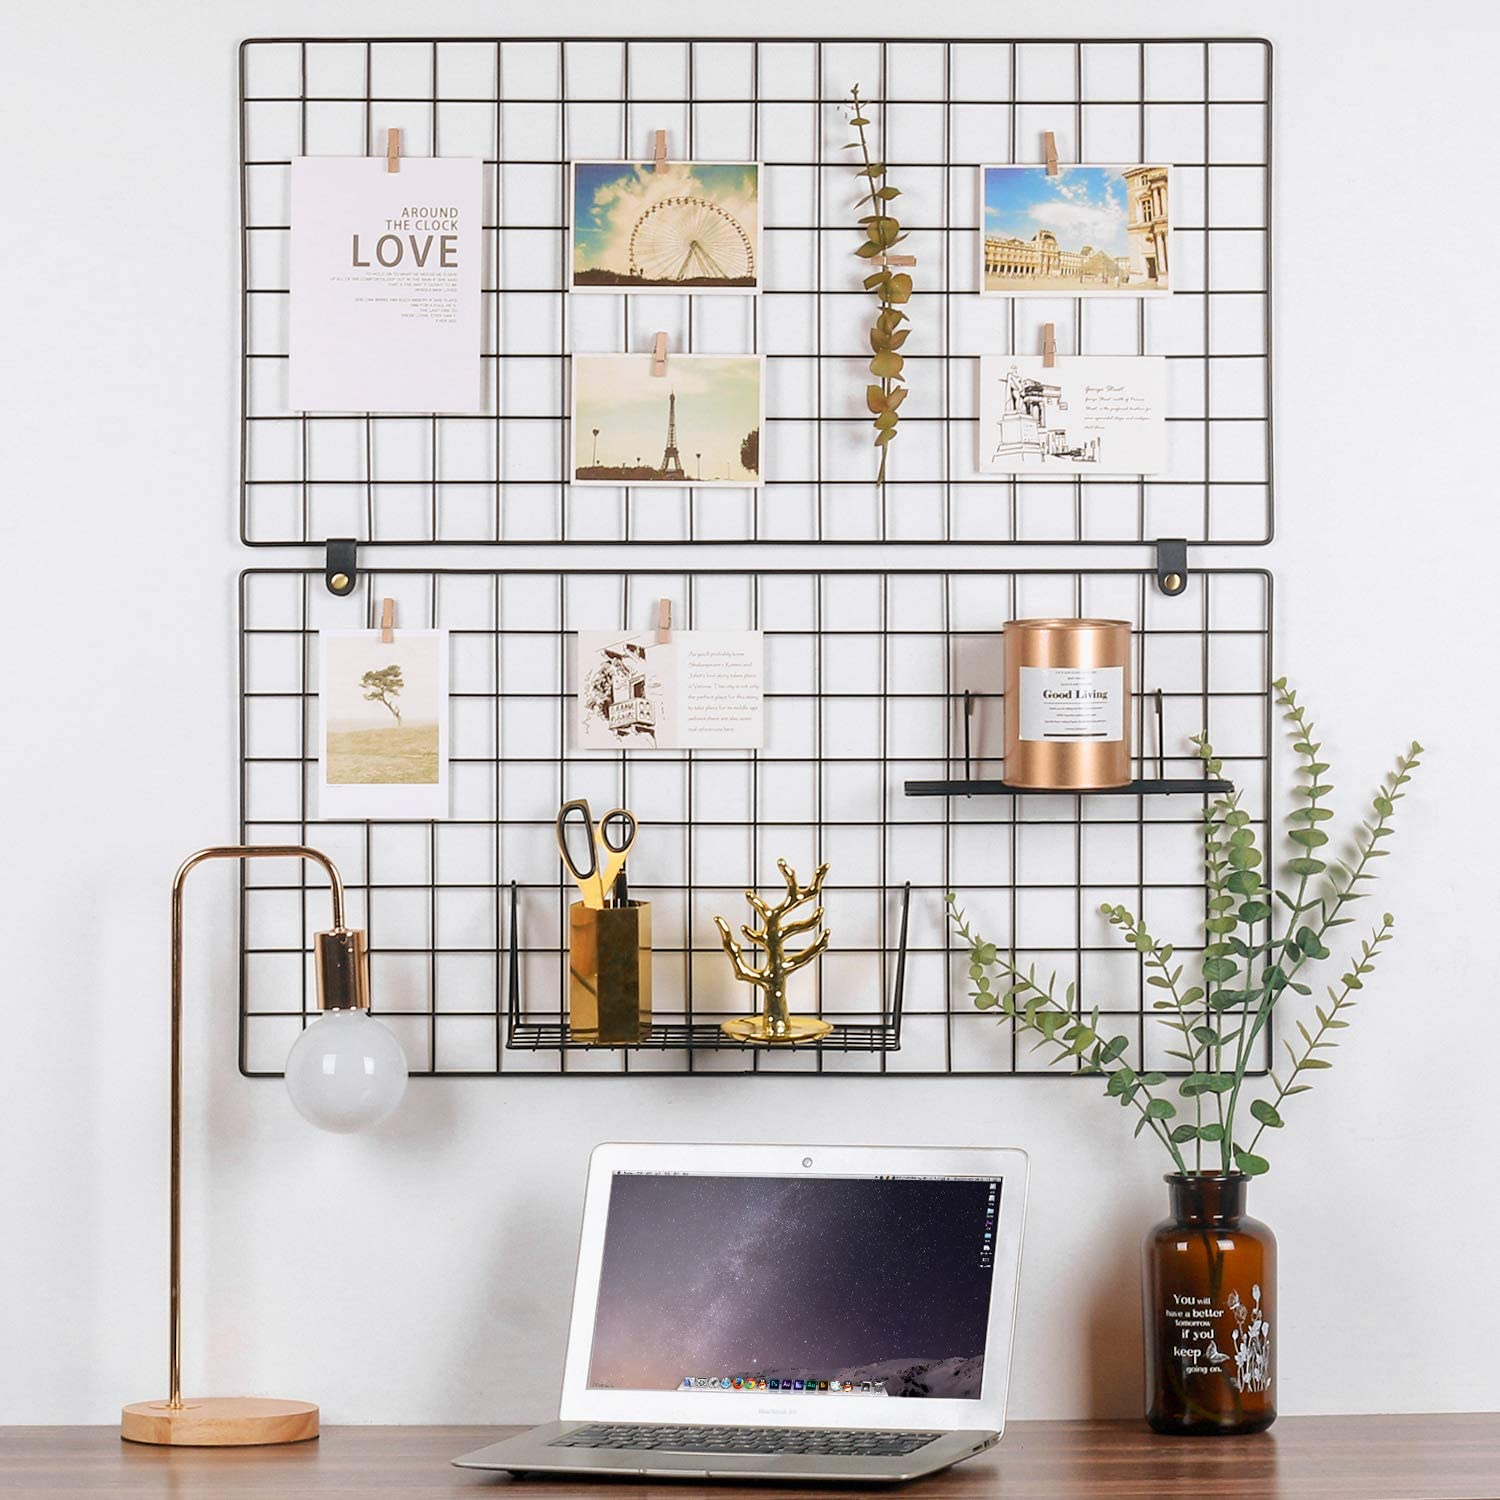 Kaforise Wire Wall Grid Panel, Multifunction Painted Photo Hanging Display and Wall Storage Organizer, Pack of 2, Size 31.5